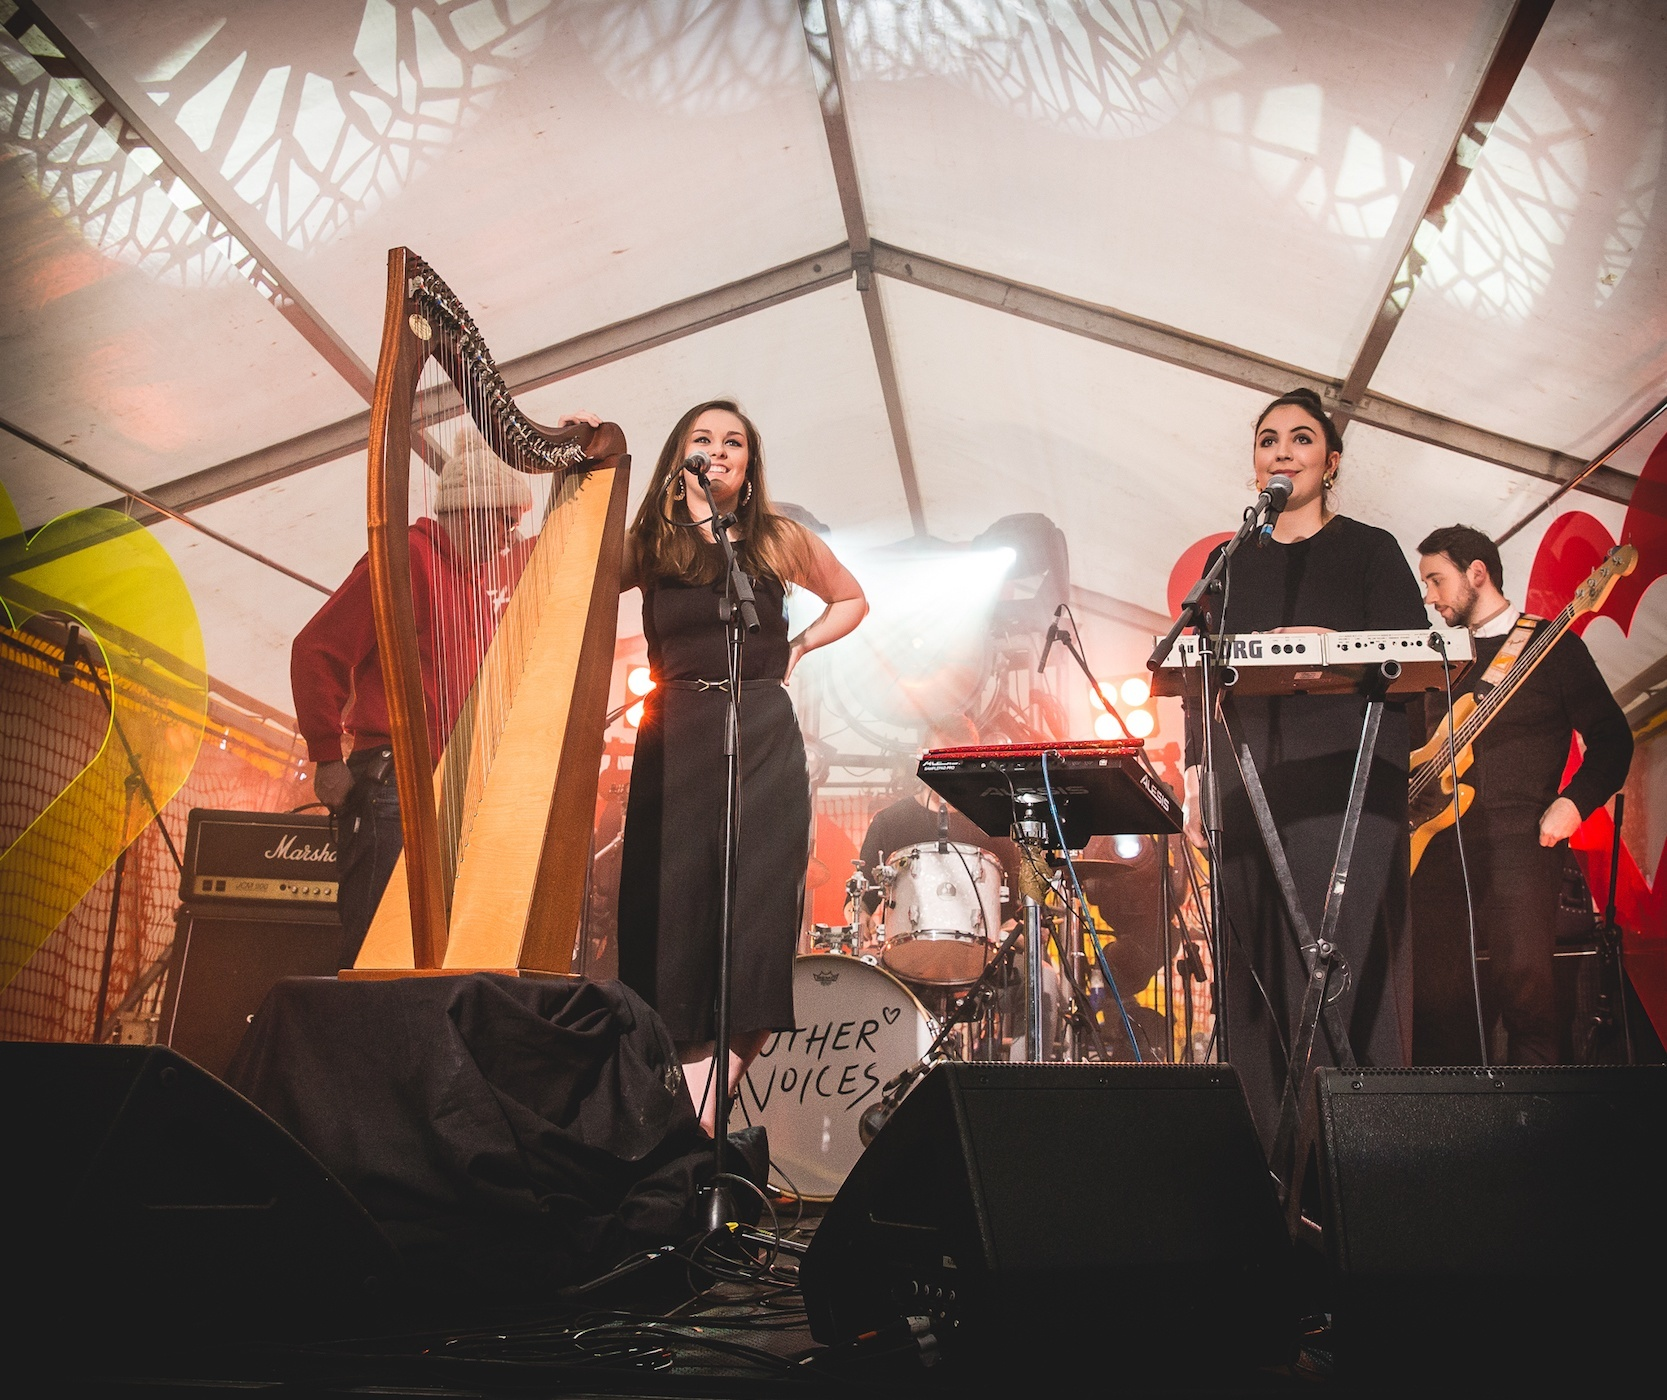 OtherVoices2015_Other Room_Saint Sister-1187